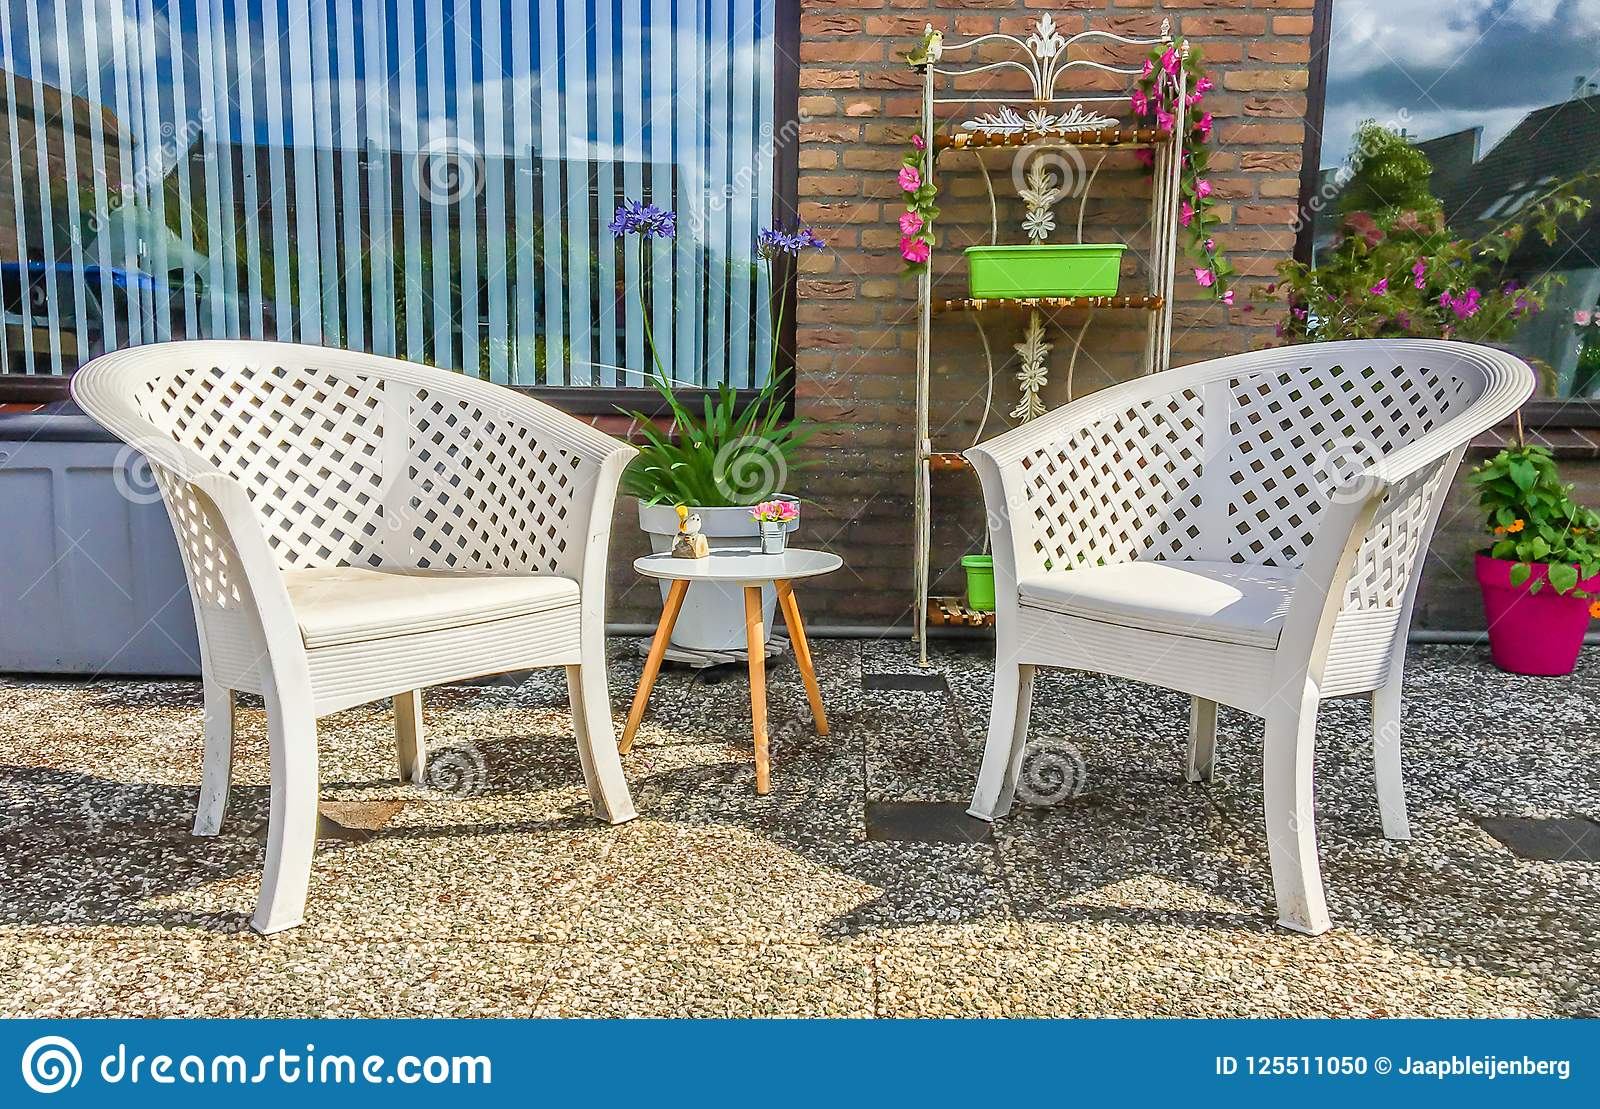 Prime White Plastic Lounge Chairs With A Small Wooden Table And Beatyapartments Chair Design Images Beatyapartmentscom